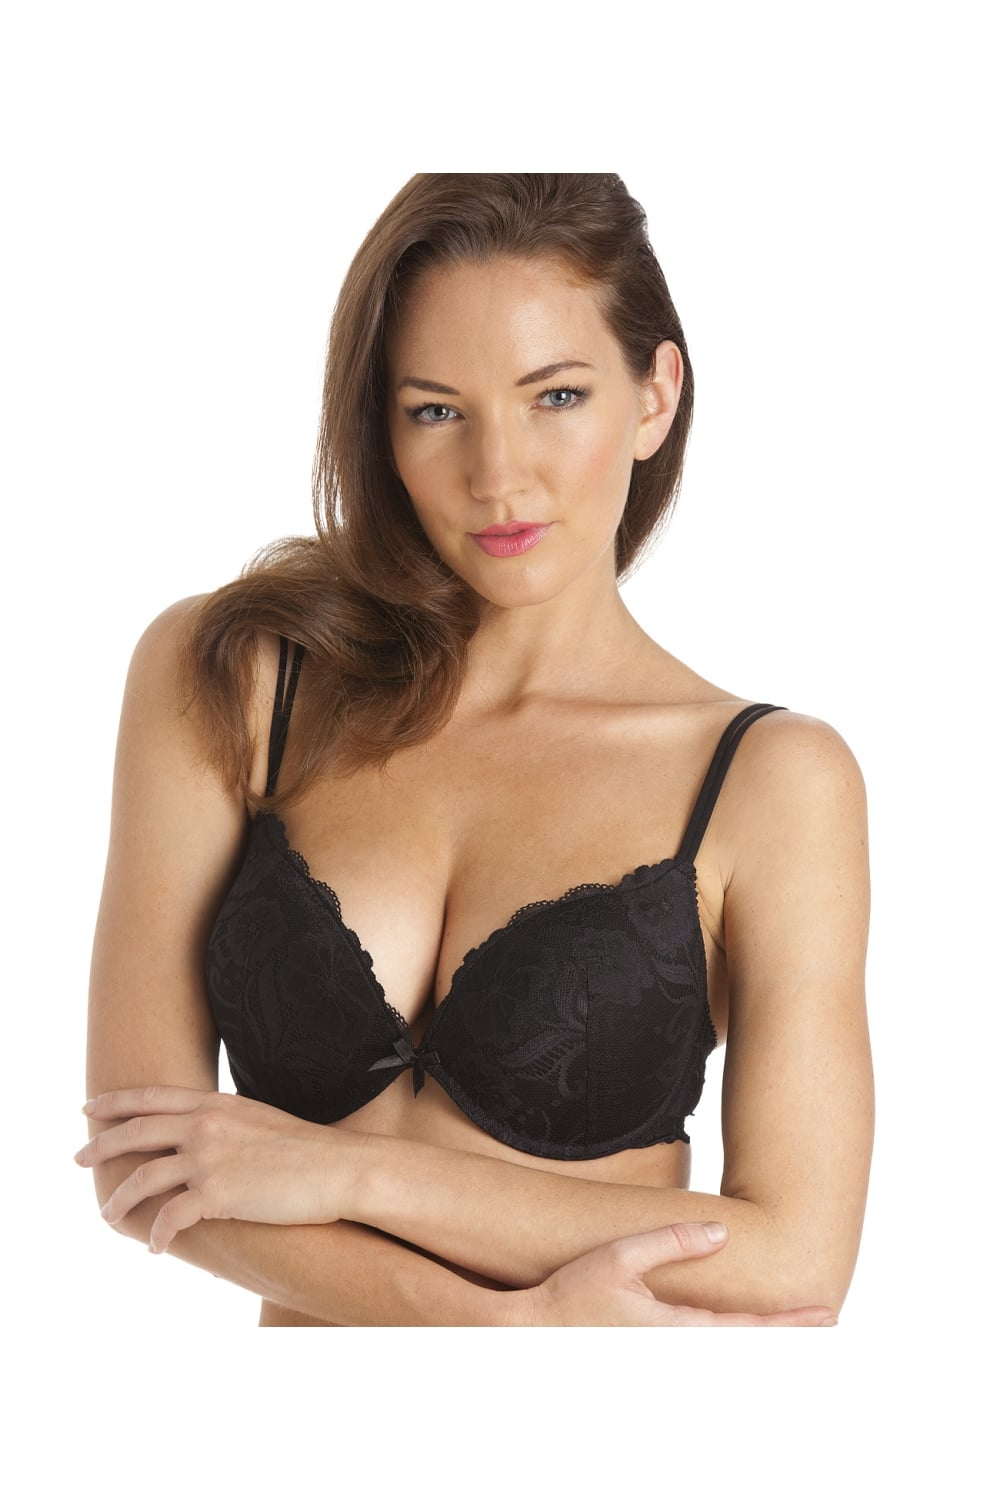 Choose these push-up bras for noticeable enhancement and a great bottom layer to get any outfit off to a solid start. Try a practical approach with the Bali collection. Its padded bras come in simple styles to lend a beautifully subtle finish.